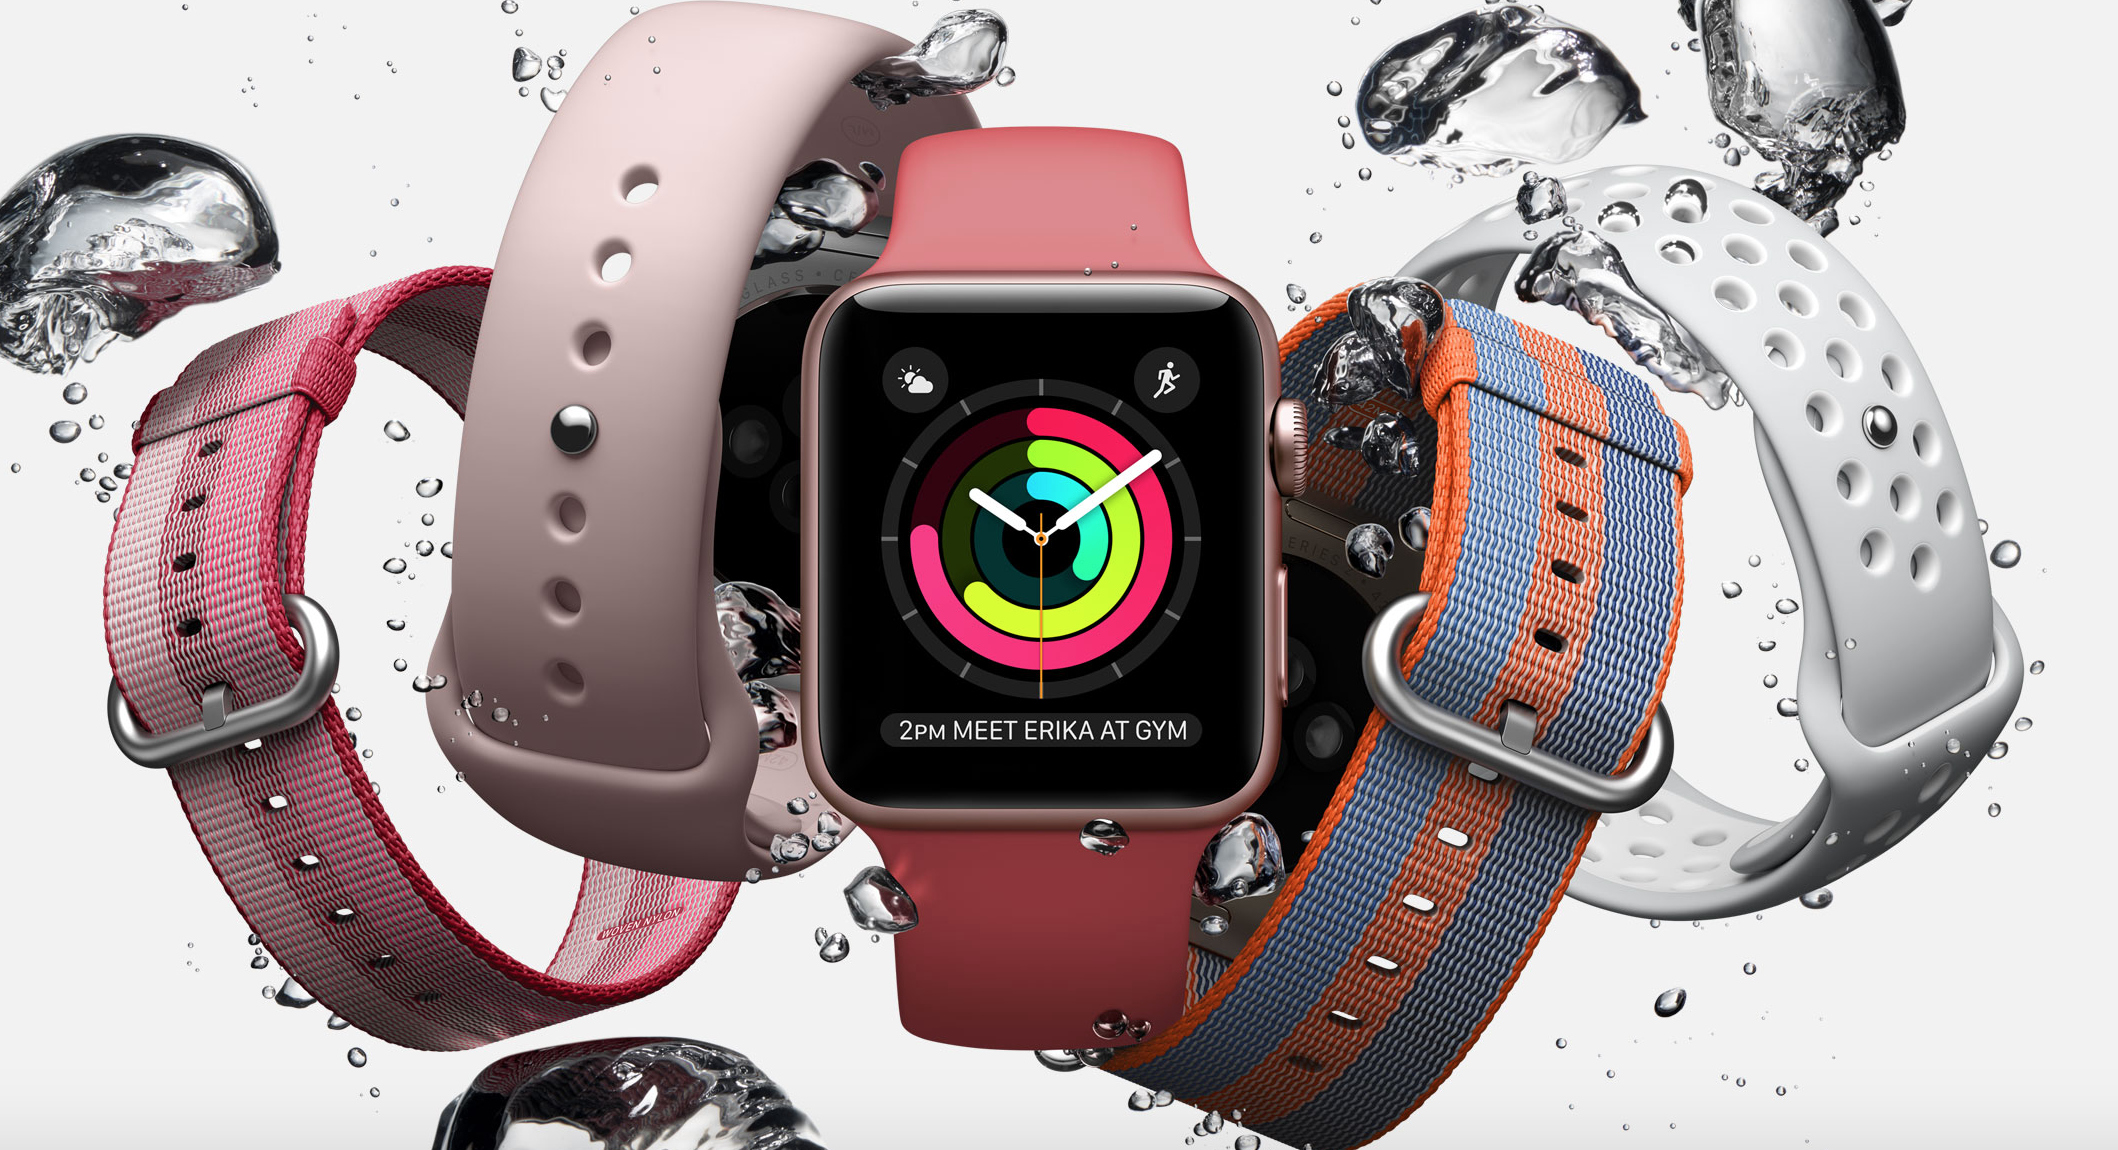 19 New Apple Watch Bands for Spring Have Arrived